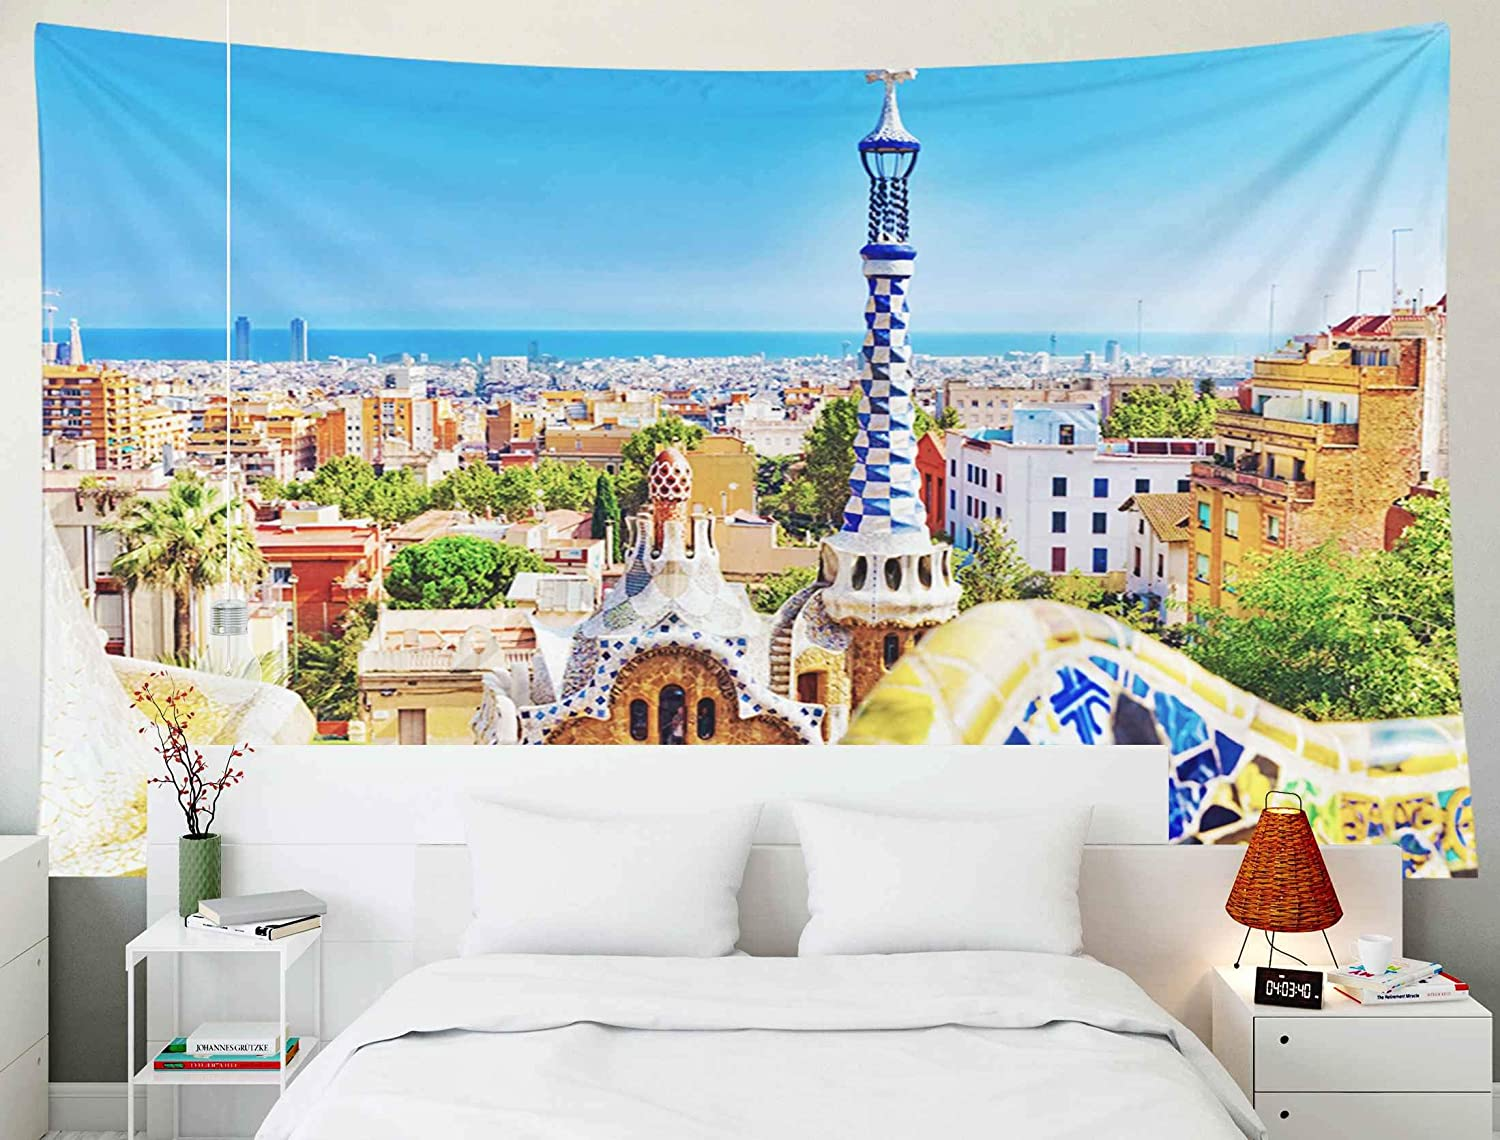 TOMWISH Tapestry Wall Hanging, Tapestries Decoration Hanging Wall Bedroom and Home Décor Dorm Spain Sept 022014 Gorgeous and Amazing Park Guel in Barcelona Guell 1914 is The Famous 80x60 Inch